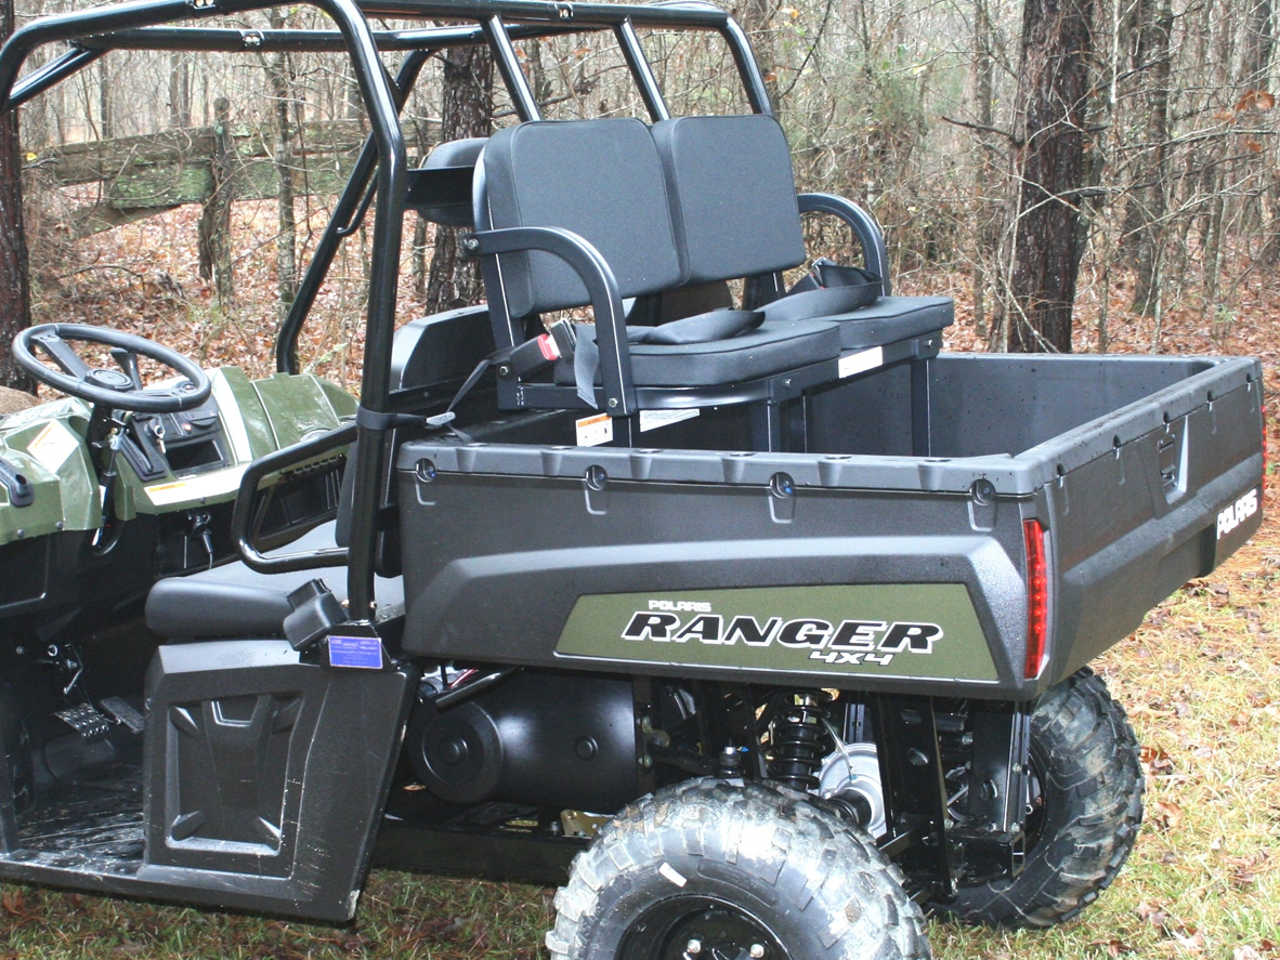 Deluxe Utv Rumble Seat Hd Heavy Duty Atv Illustrated 2014 Polaris Ranger Wiring Diagram Vendor2014great Day Incdeluxe